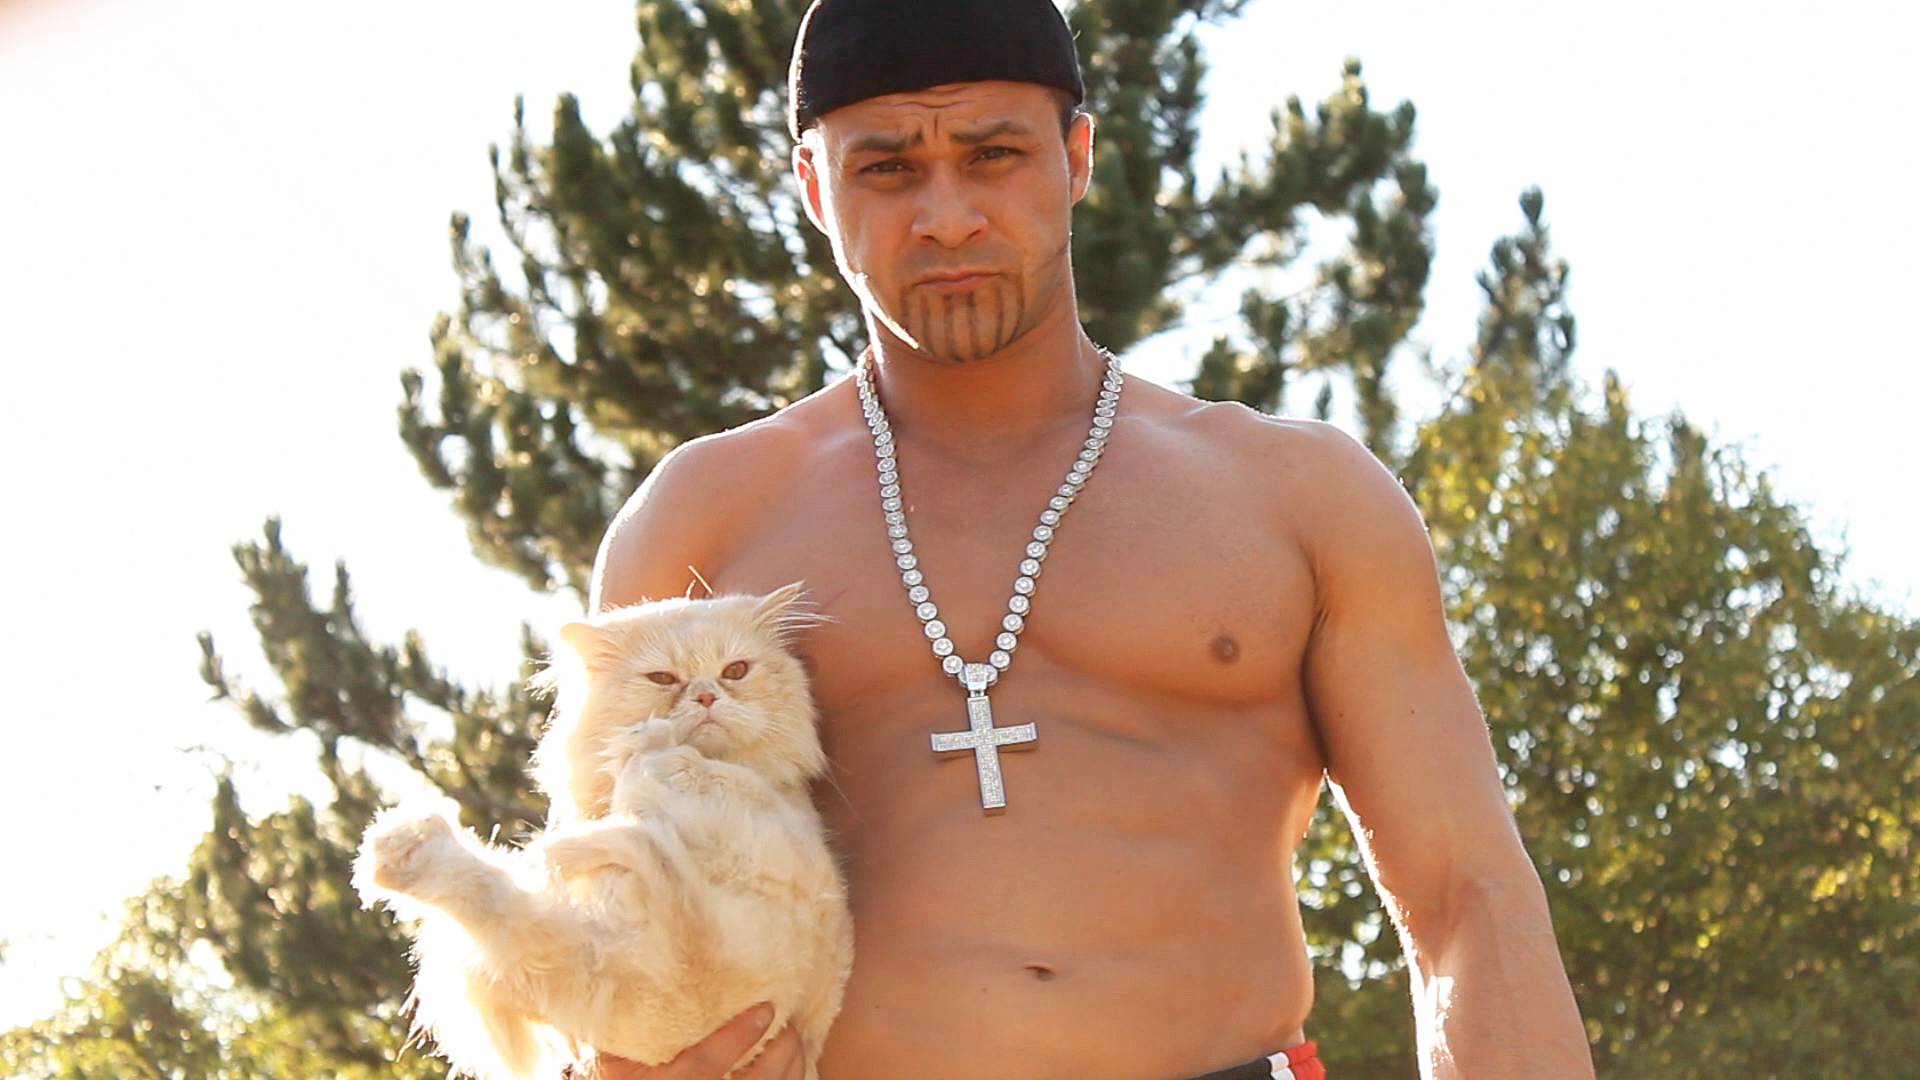 The Rise and Fall of Wrestling's Weed-Dealing, Cat-Breeding Phenom